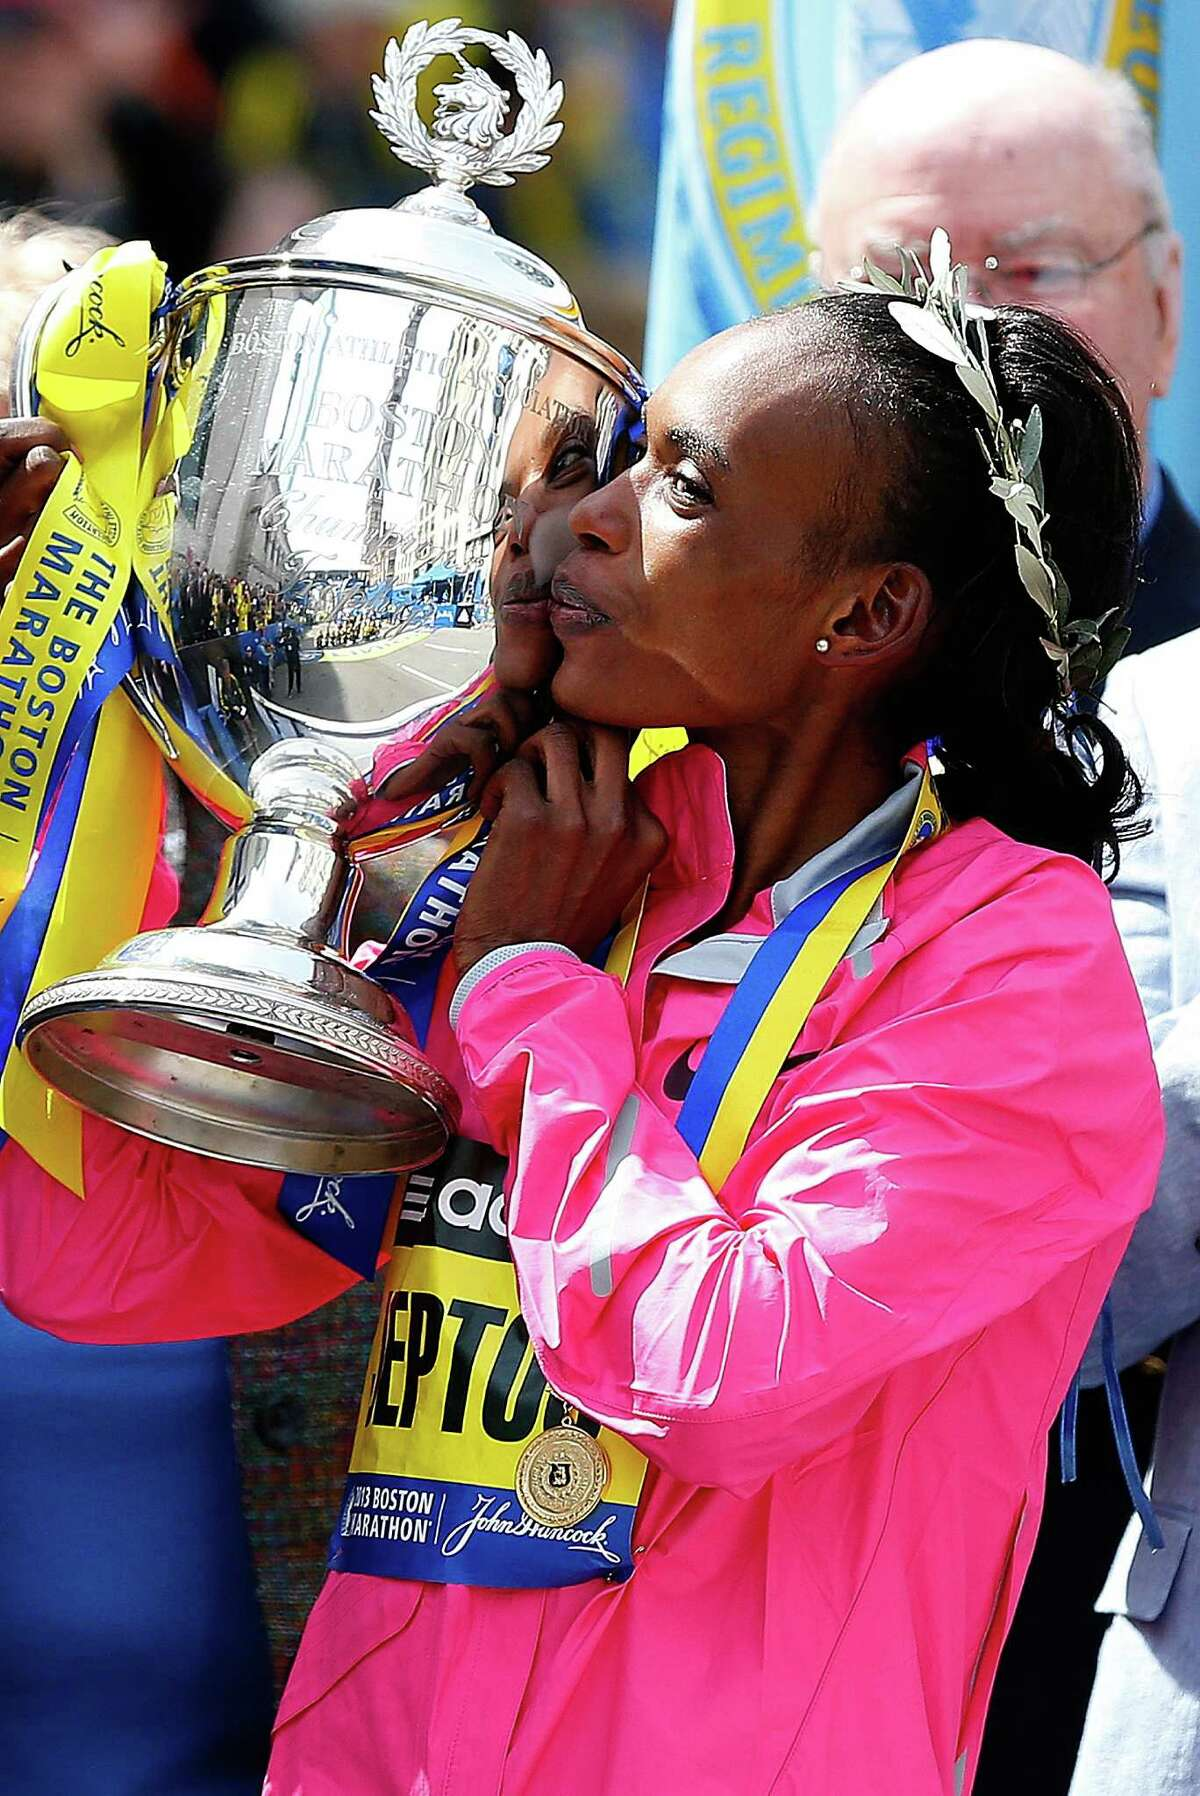 BOSTON, MA - APRIL 15: Rita Jeptoo of Kenya kisses the trophy after winning the women?s division of the 117th Boston Marathon on April 15, 2013 in Boston, Massachusetts.